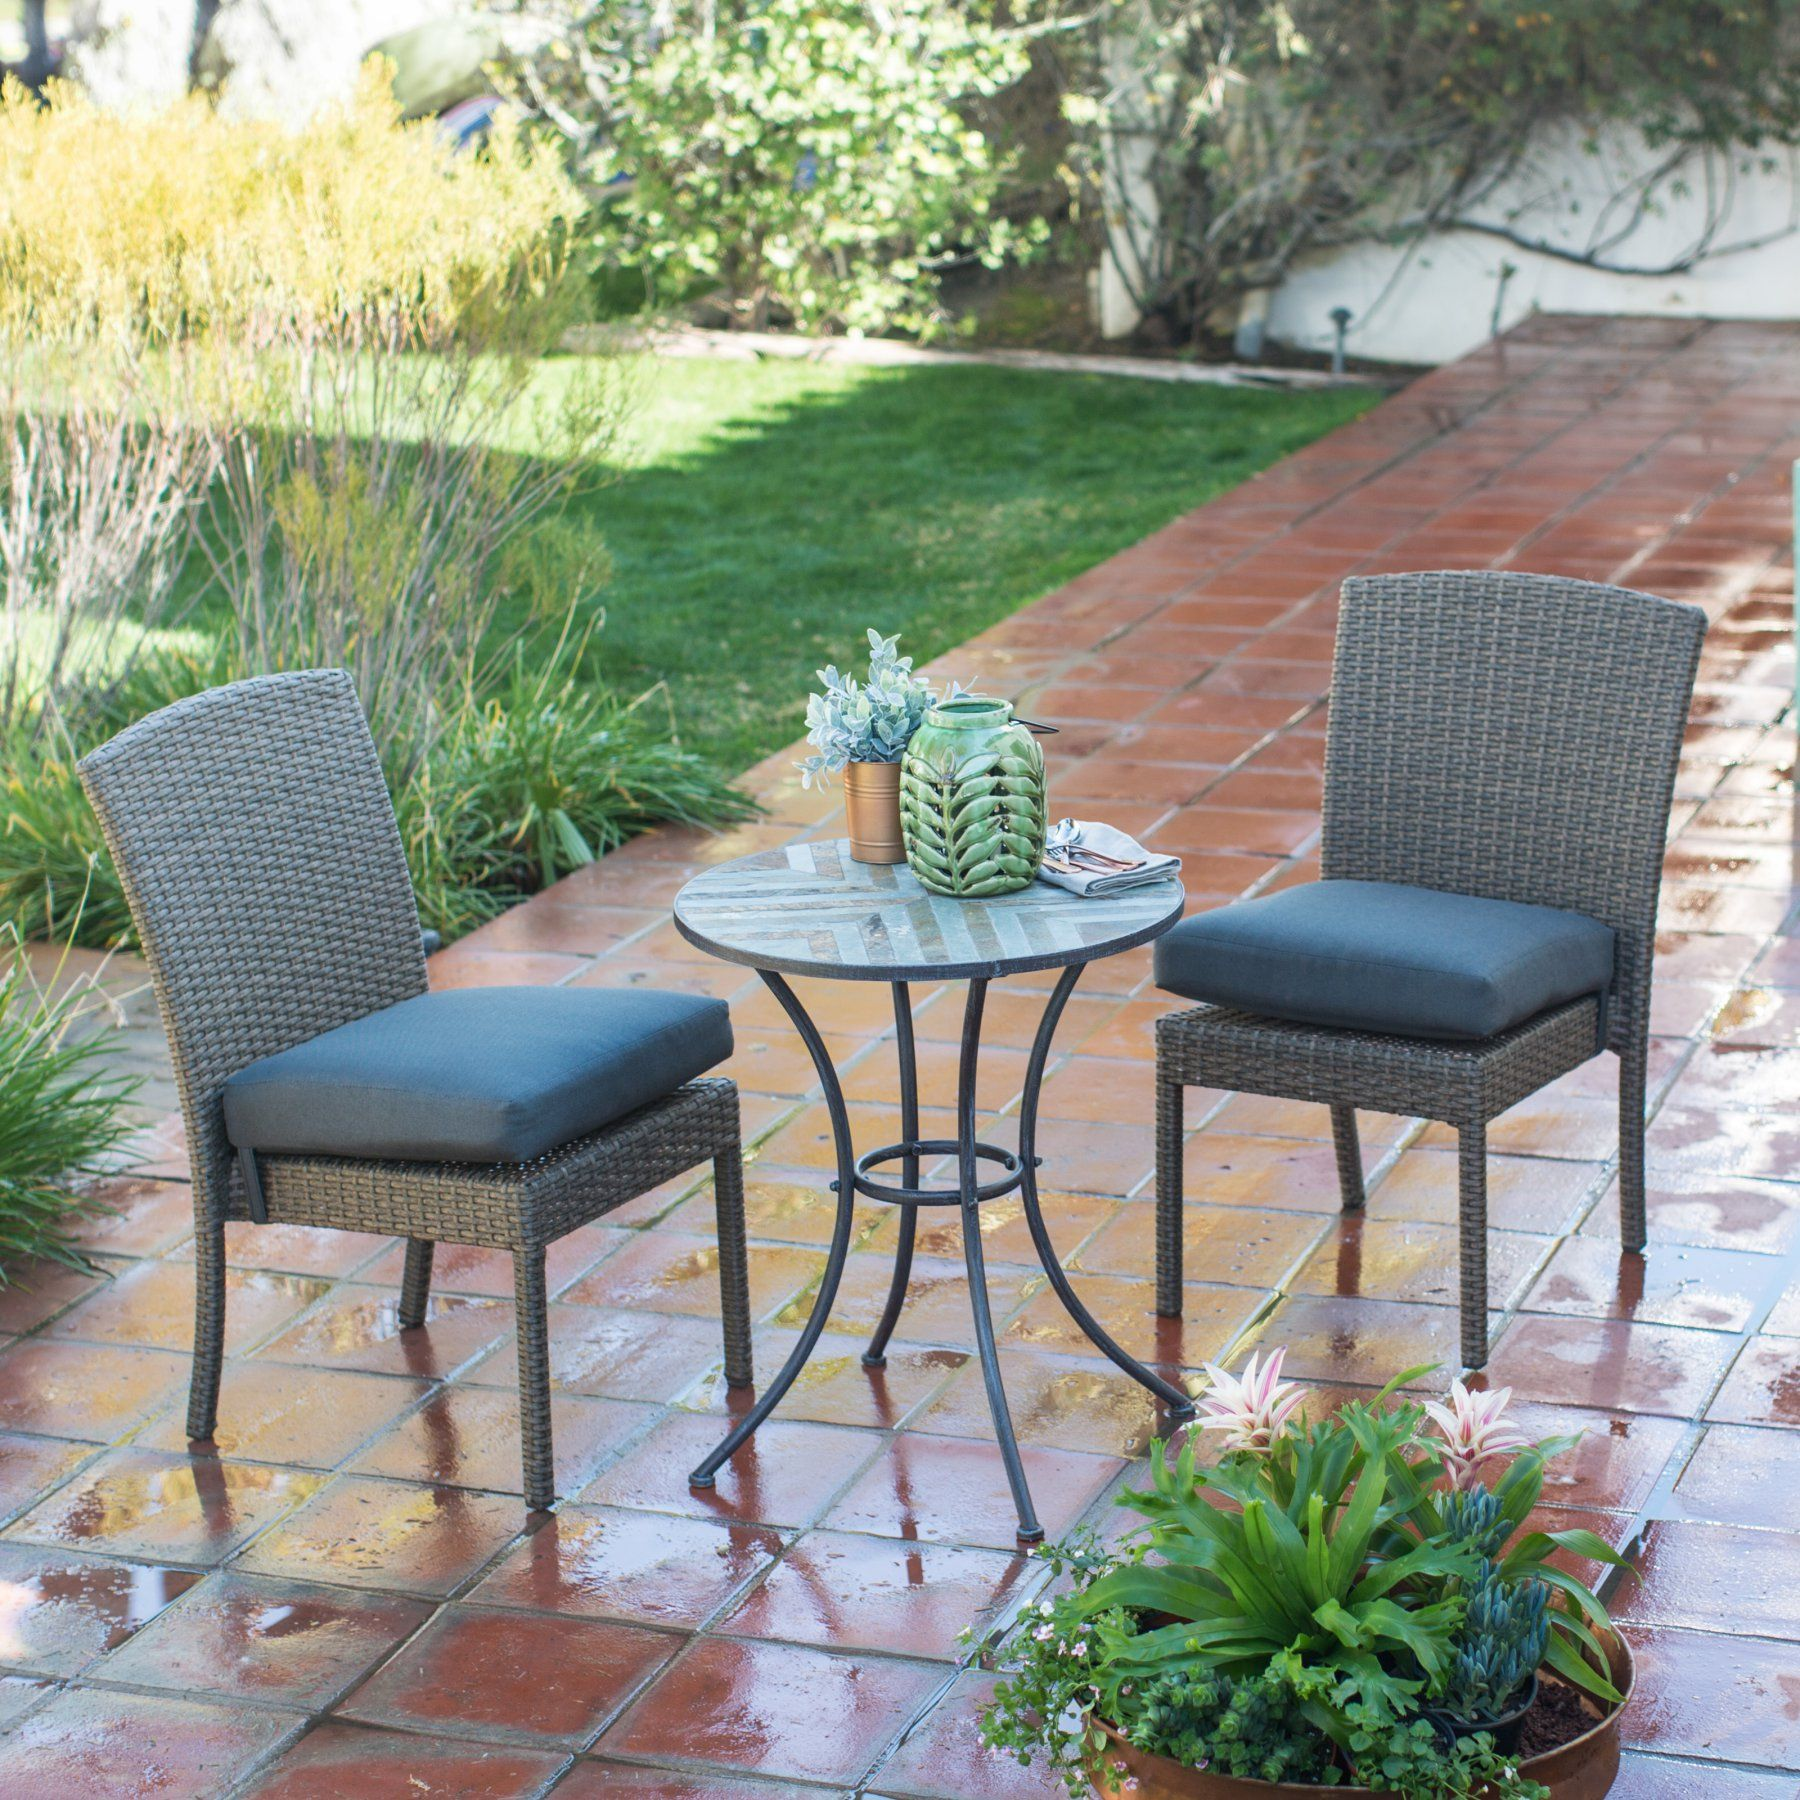 Outdoor Belham Living Ashera All Weather & Stone 3 Piece Patio Bistro Set - PSM360